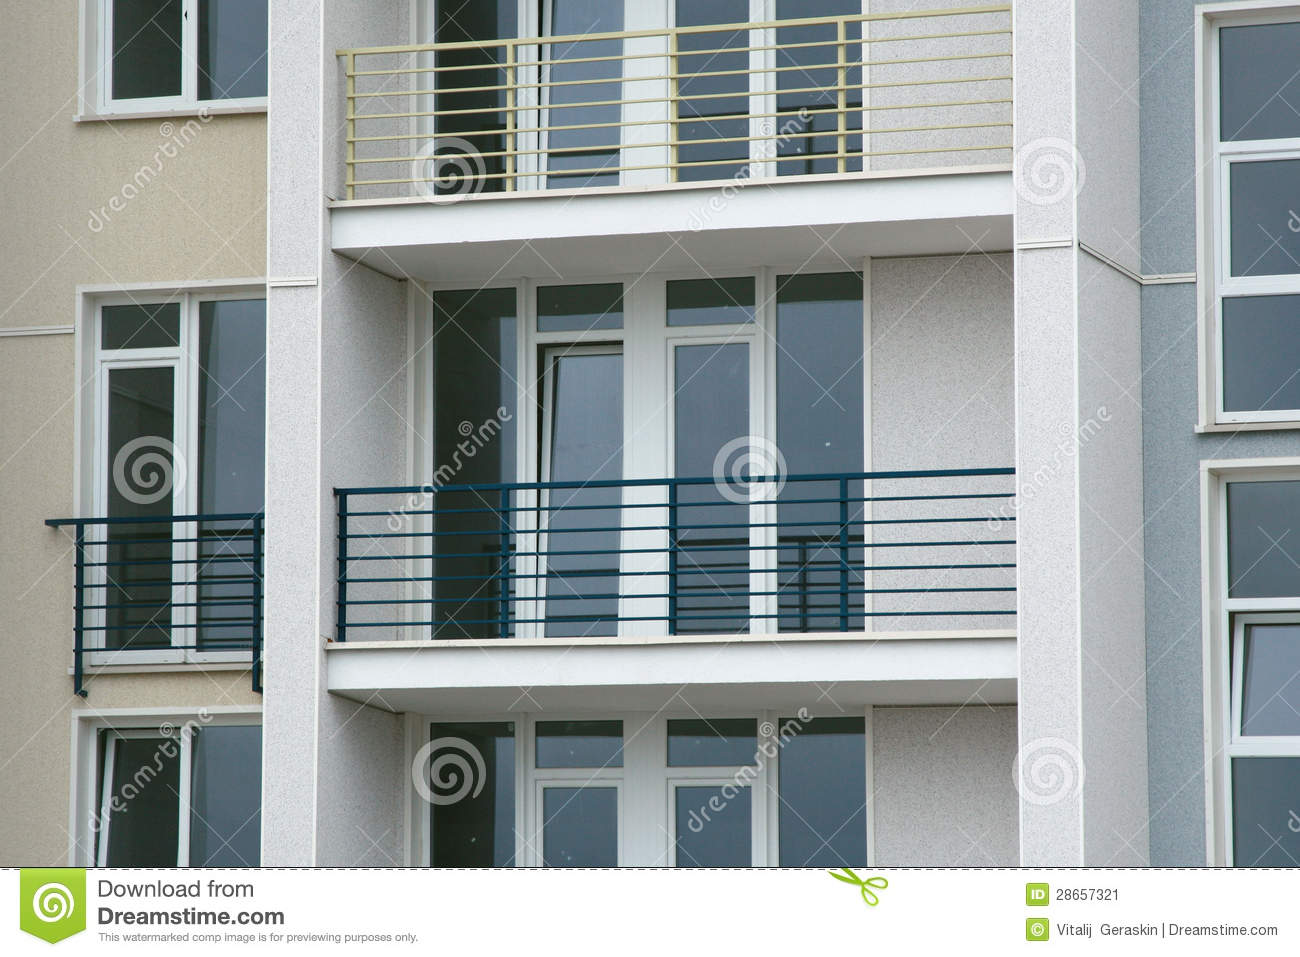 Stainless steel balcony on the modern building stock image for Stainless steel balcony